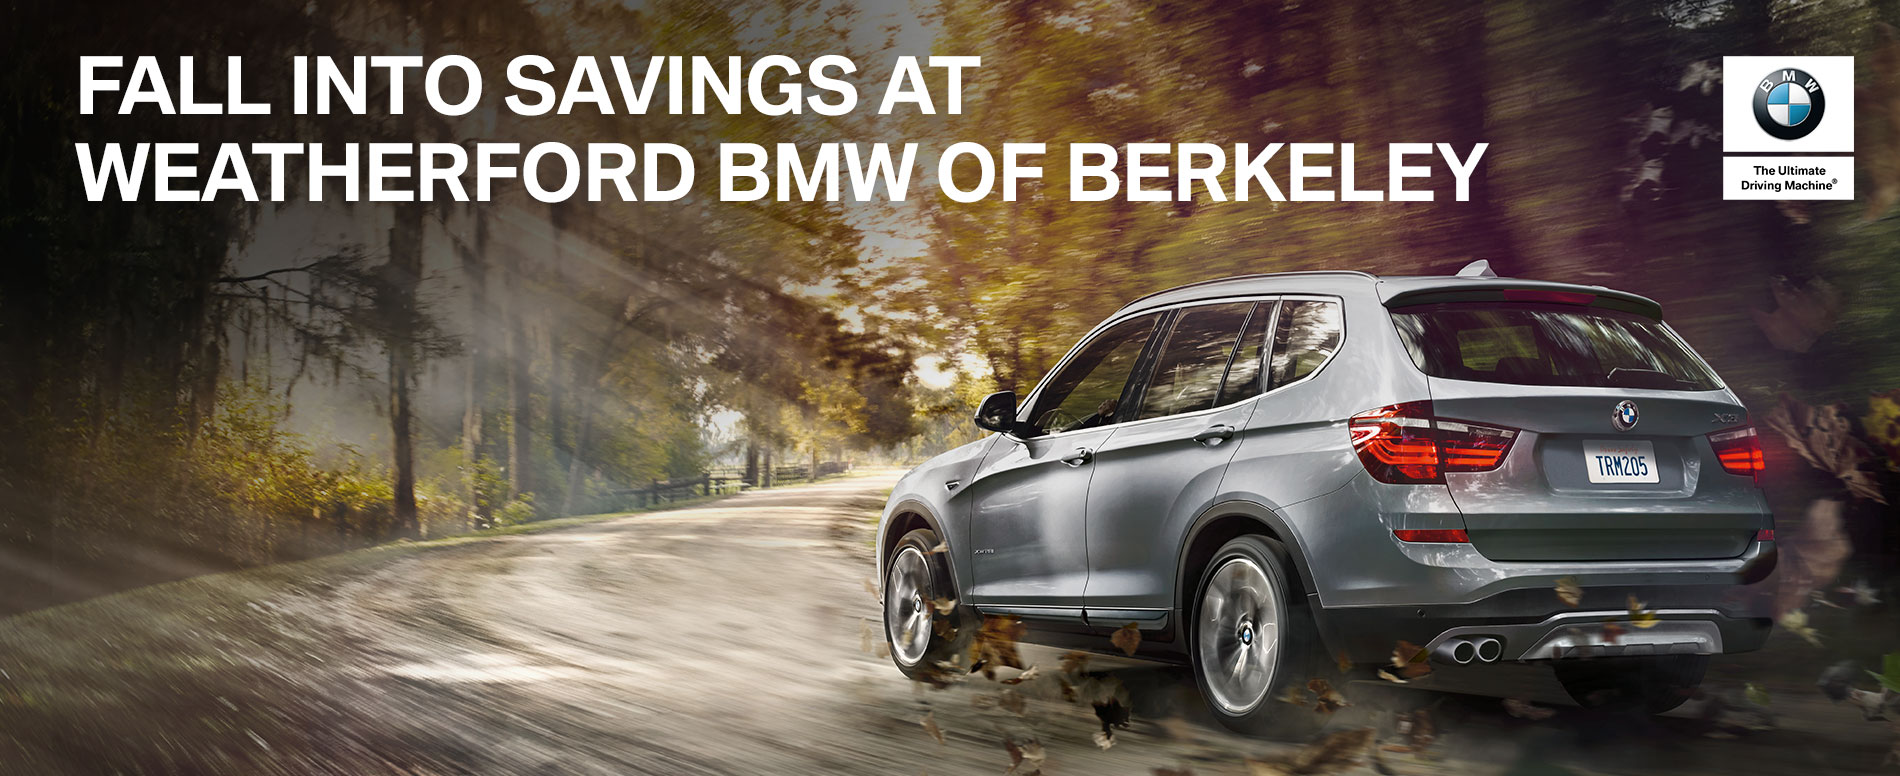 Weatherford BMW  Berkeley CA  Center of Excellence Serving the